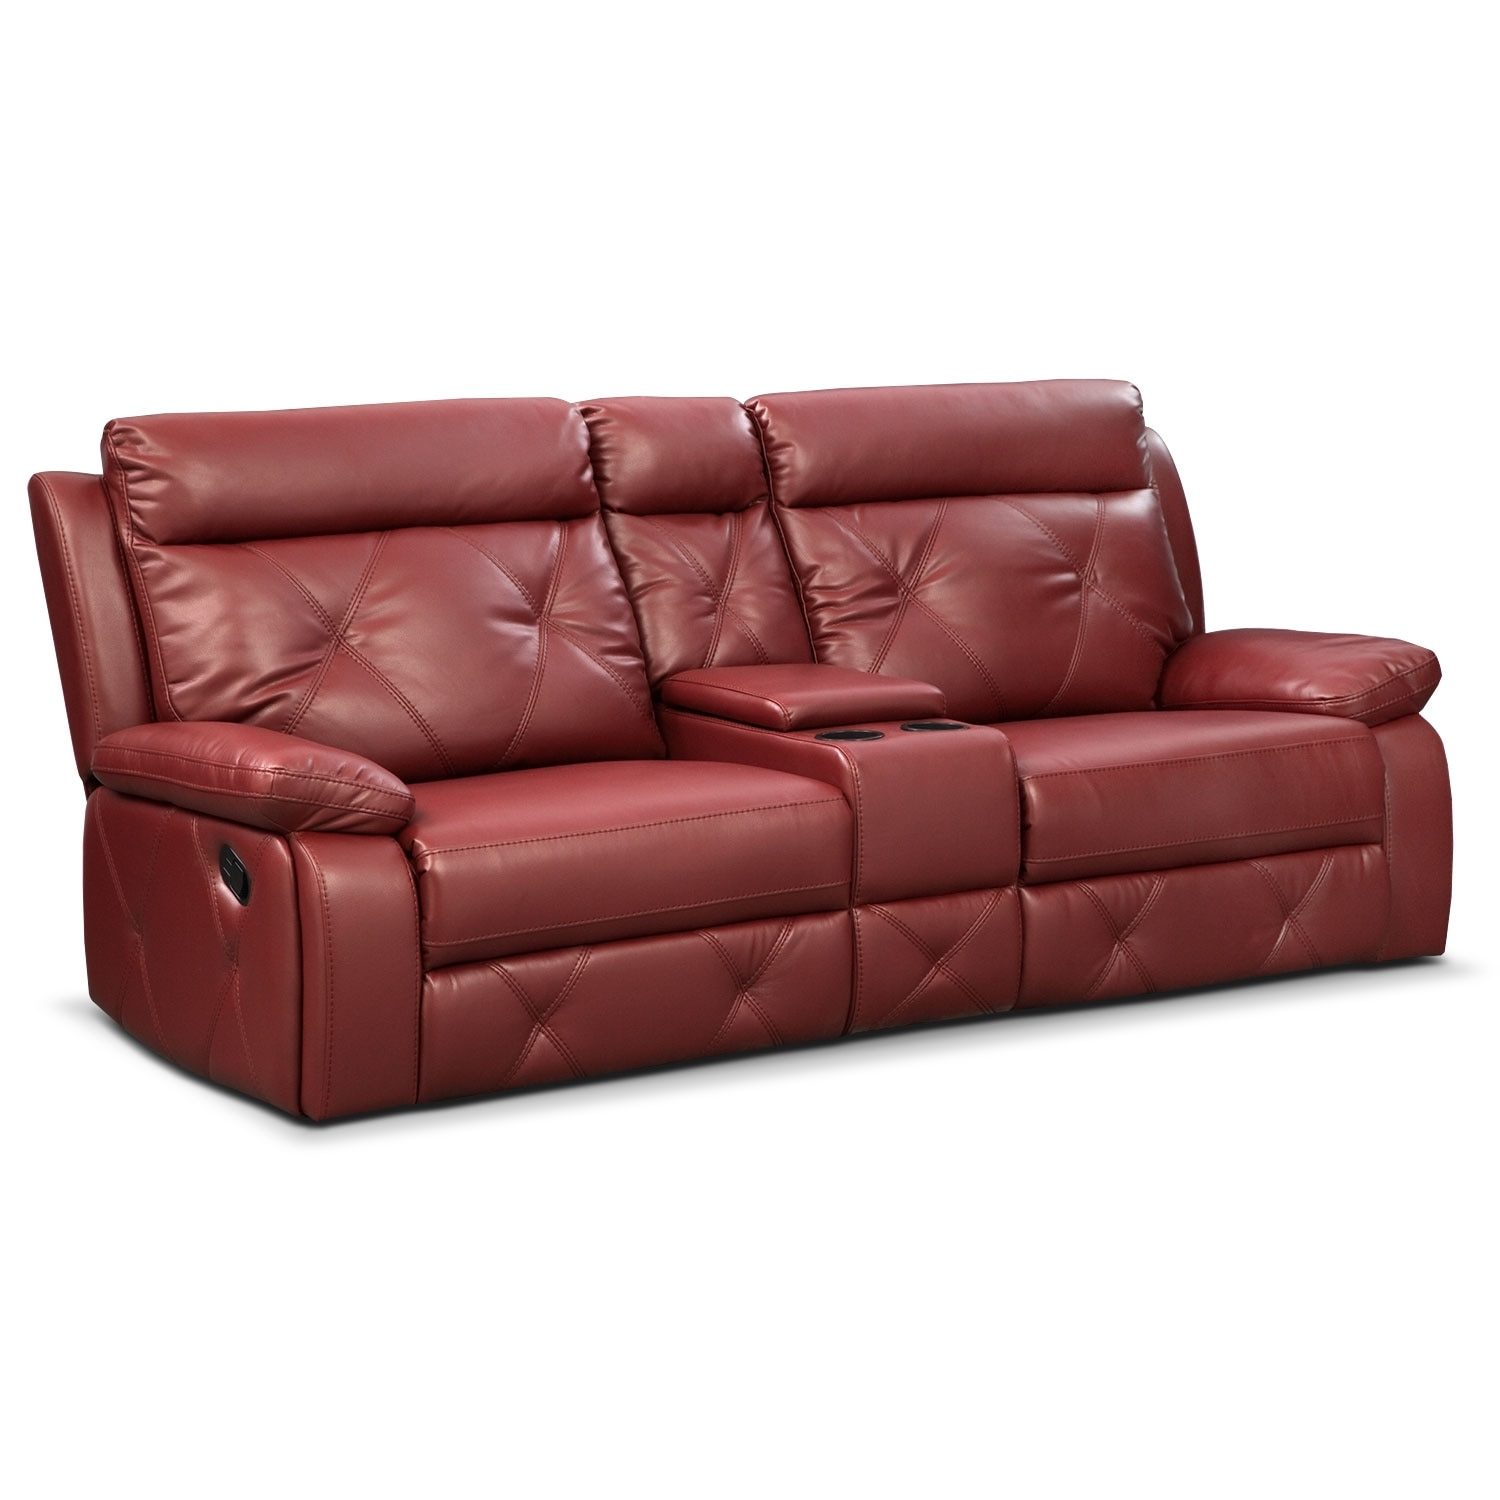 Living Room Furniture - Dante Red 3 Pc. Reclining Sofa with Console